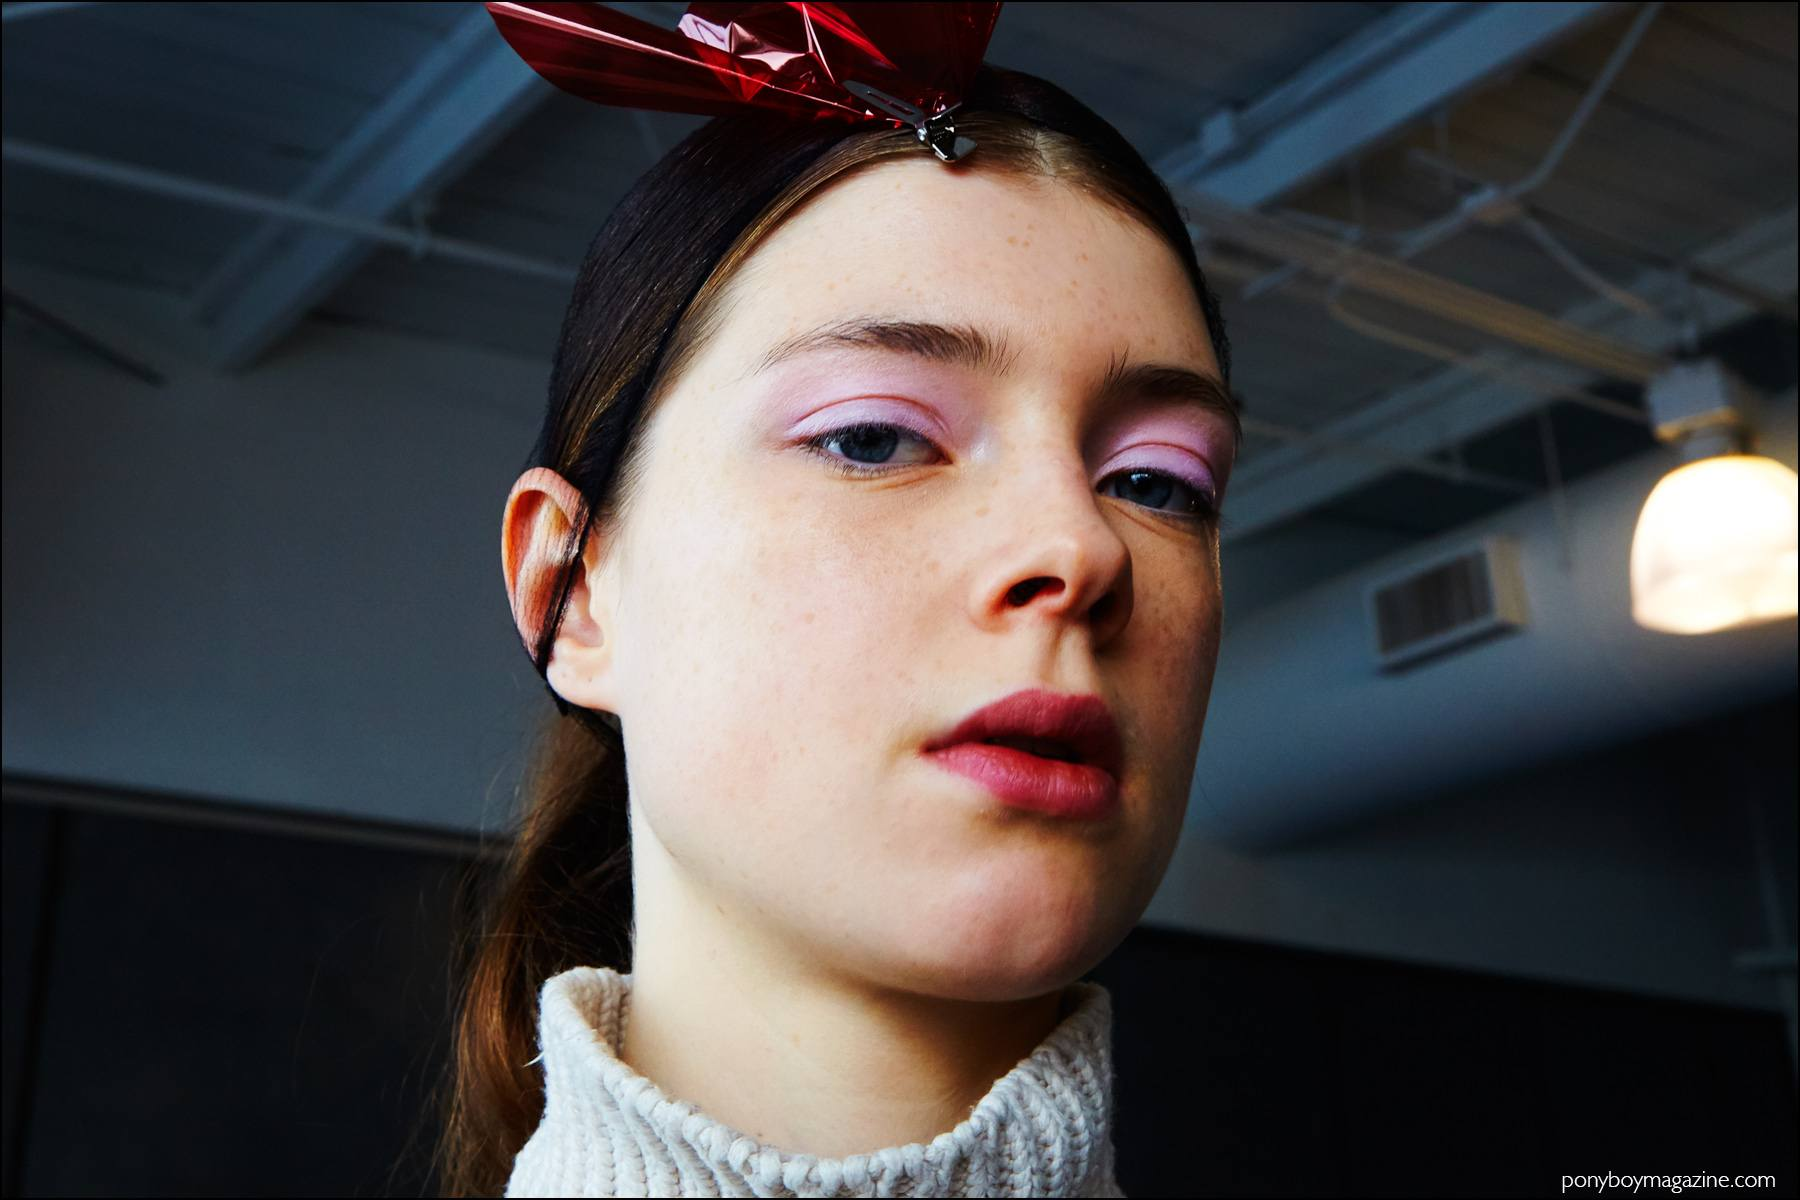 A model backstage in hair & makeup at Milly F/W16 womenswear show. Photography by Alexander Thompson for Ponyboy magazine.